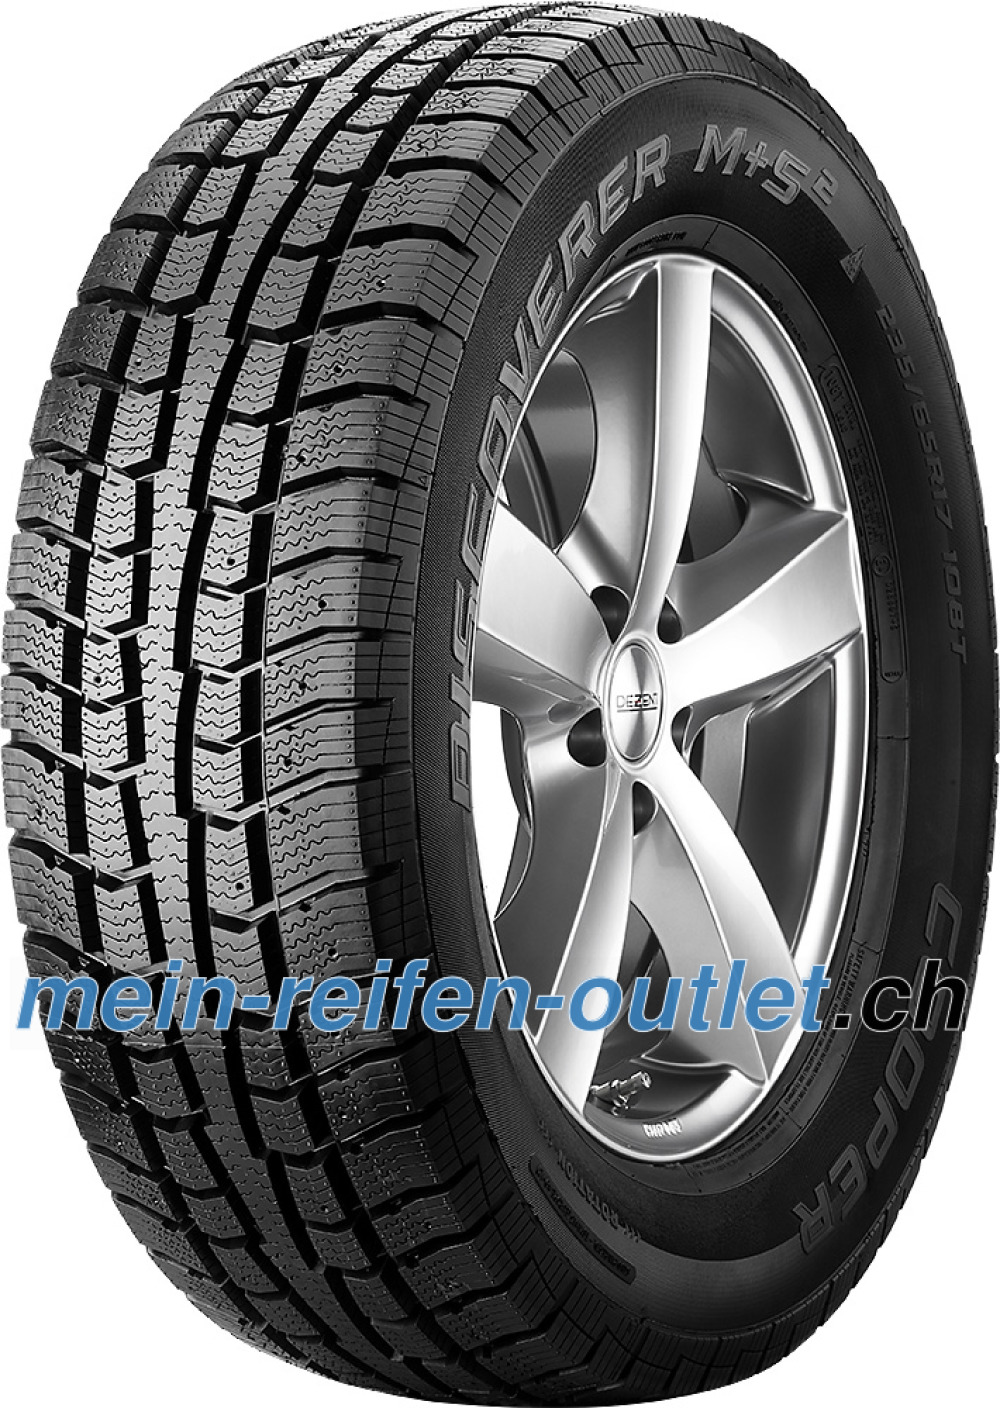 Cooper Discoverer M+S 2 ( 225/75 R16 104T BSS )